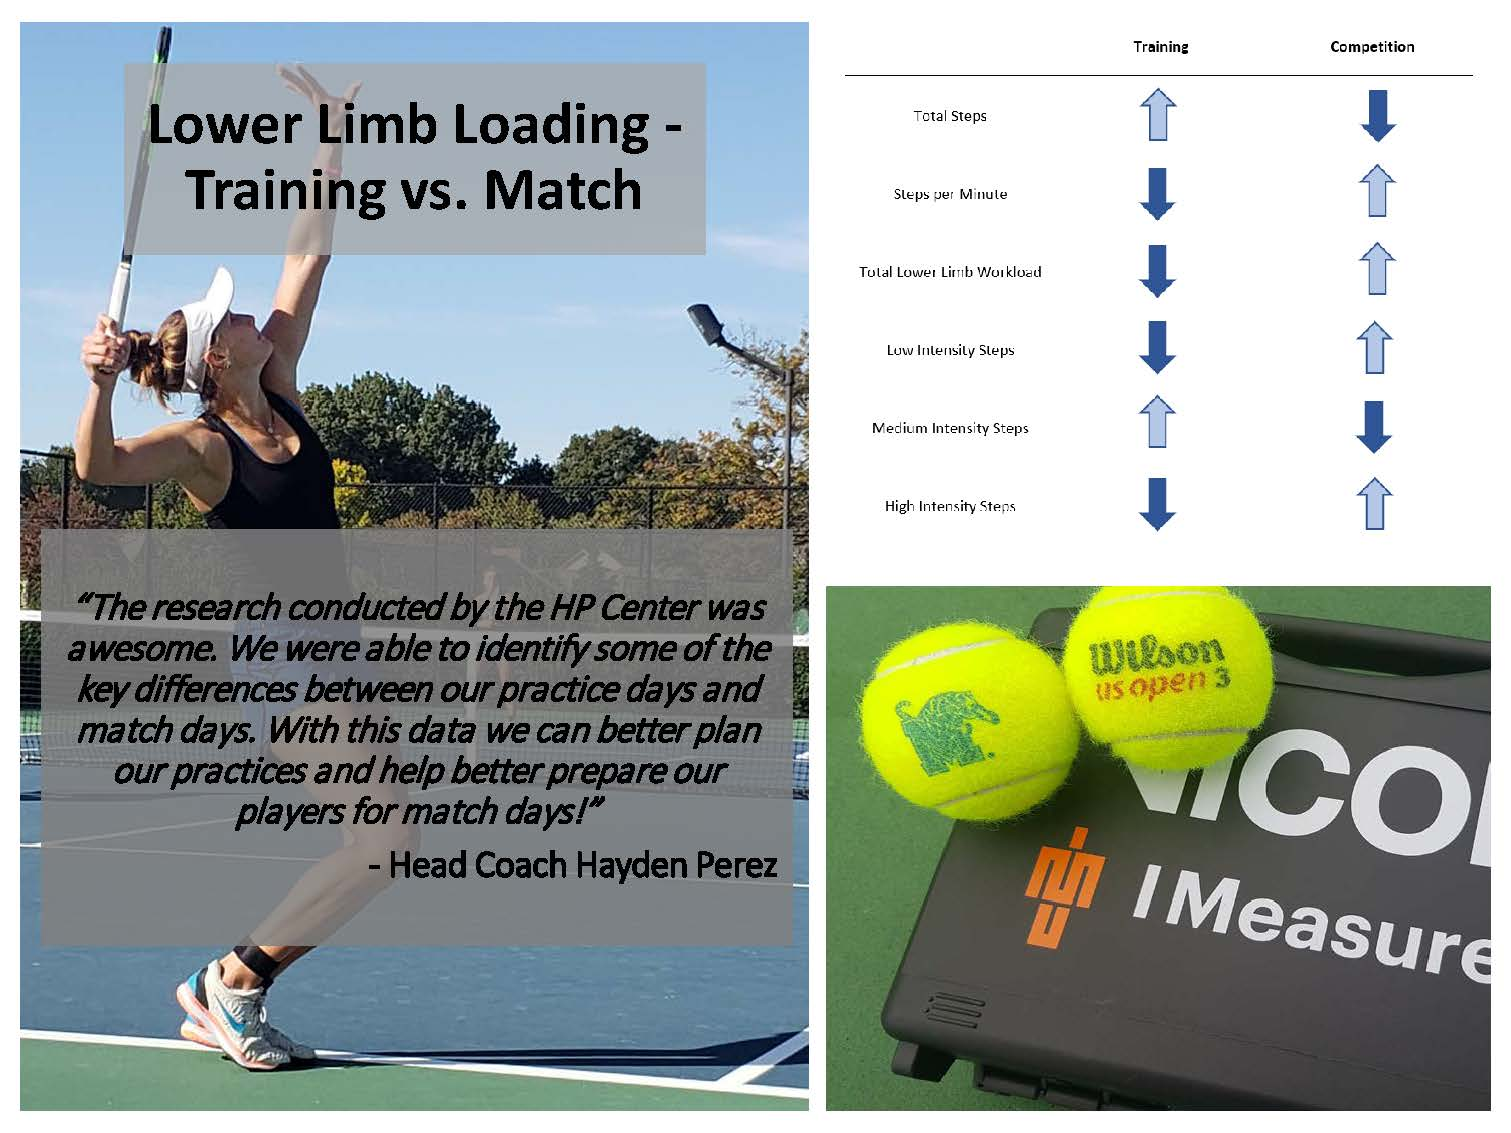 "Lower Limb Loading: Training vs. Match; Photo of women's tennis player and tennis balls on top of IMeasureU case. Head tennis coach, Hayden Perez, says ""The research coneducted by the HP Center was awesome. We were able to identify some of the key differences between our practice days and match days. With this data, we can better plan our practices and help better prepare our players for match days!"""